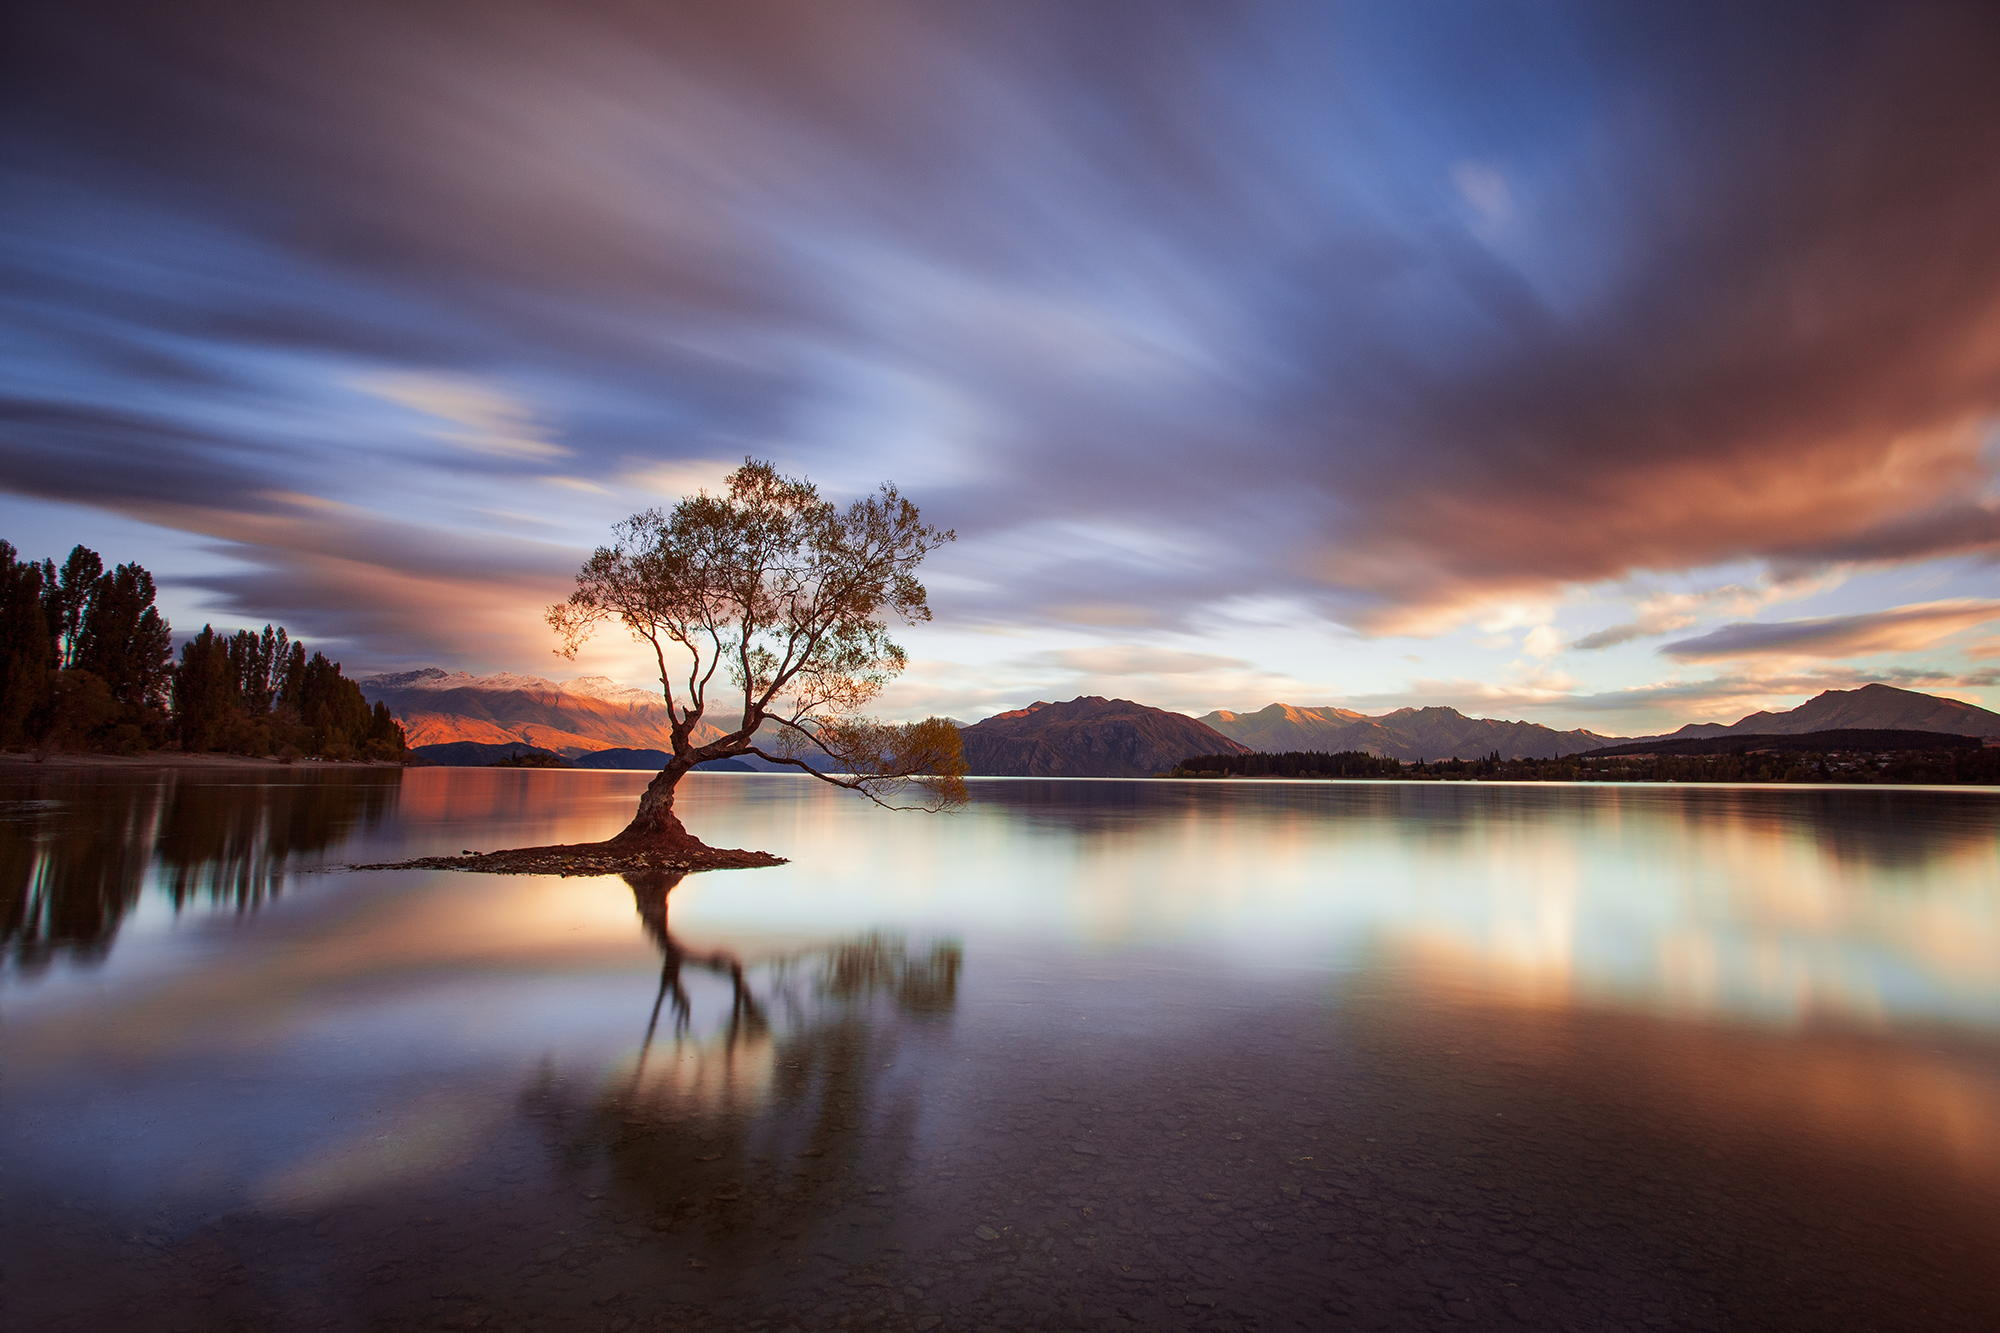 One Calm Tree by Rob Dickinson